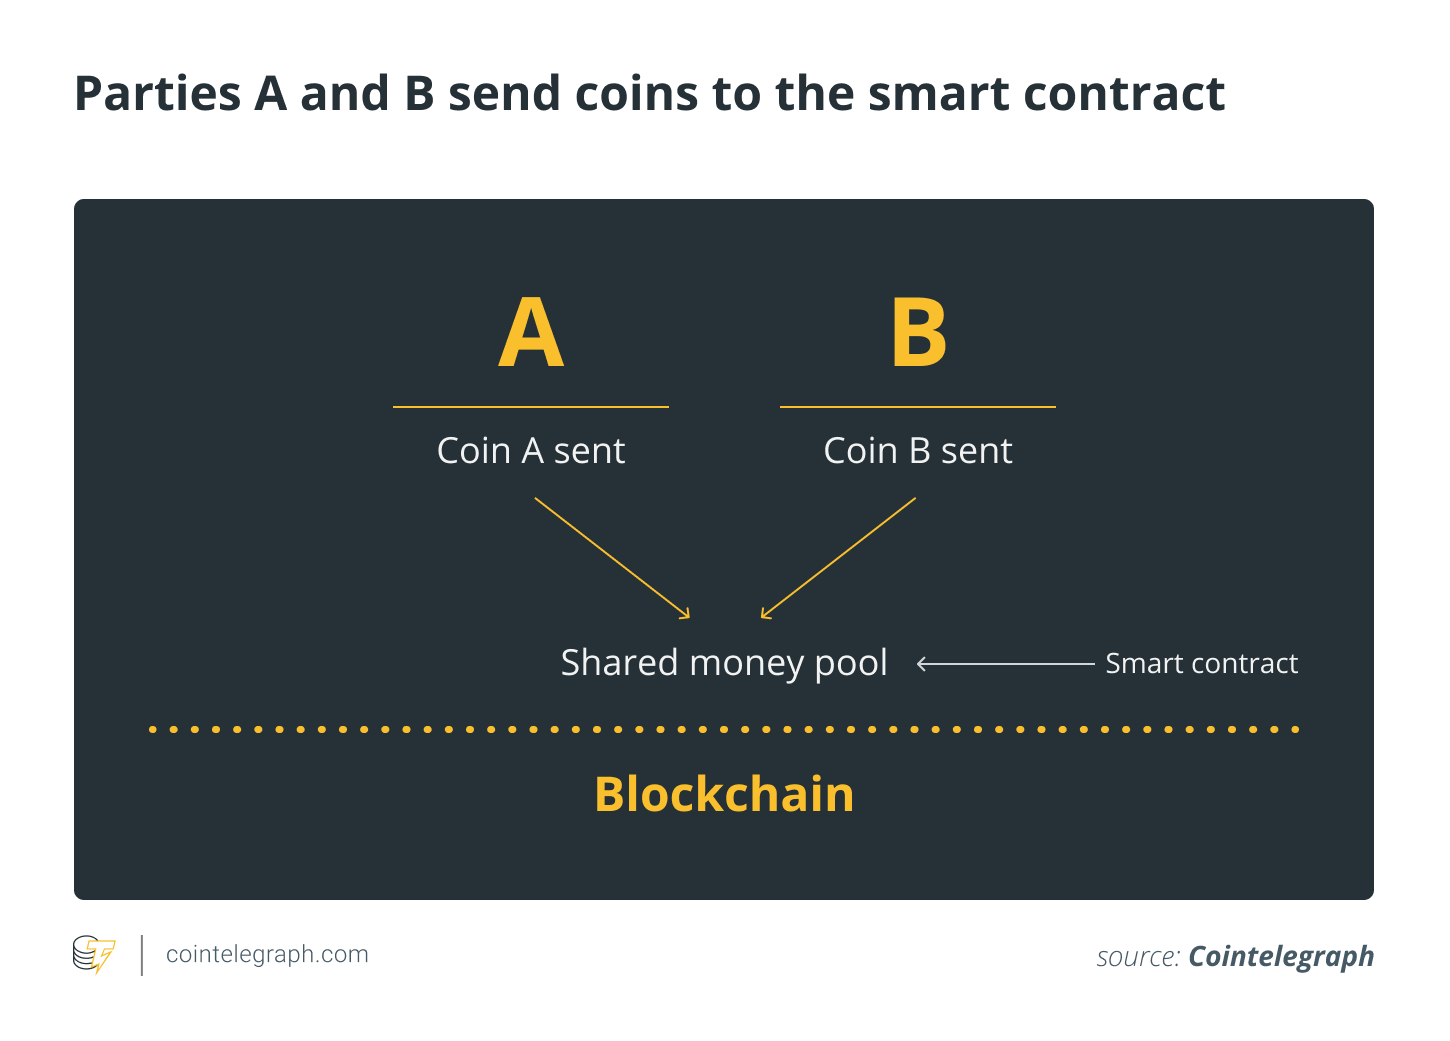 Parties A and B send coins to the smart contract, making deposits to open a payment channel between them